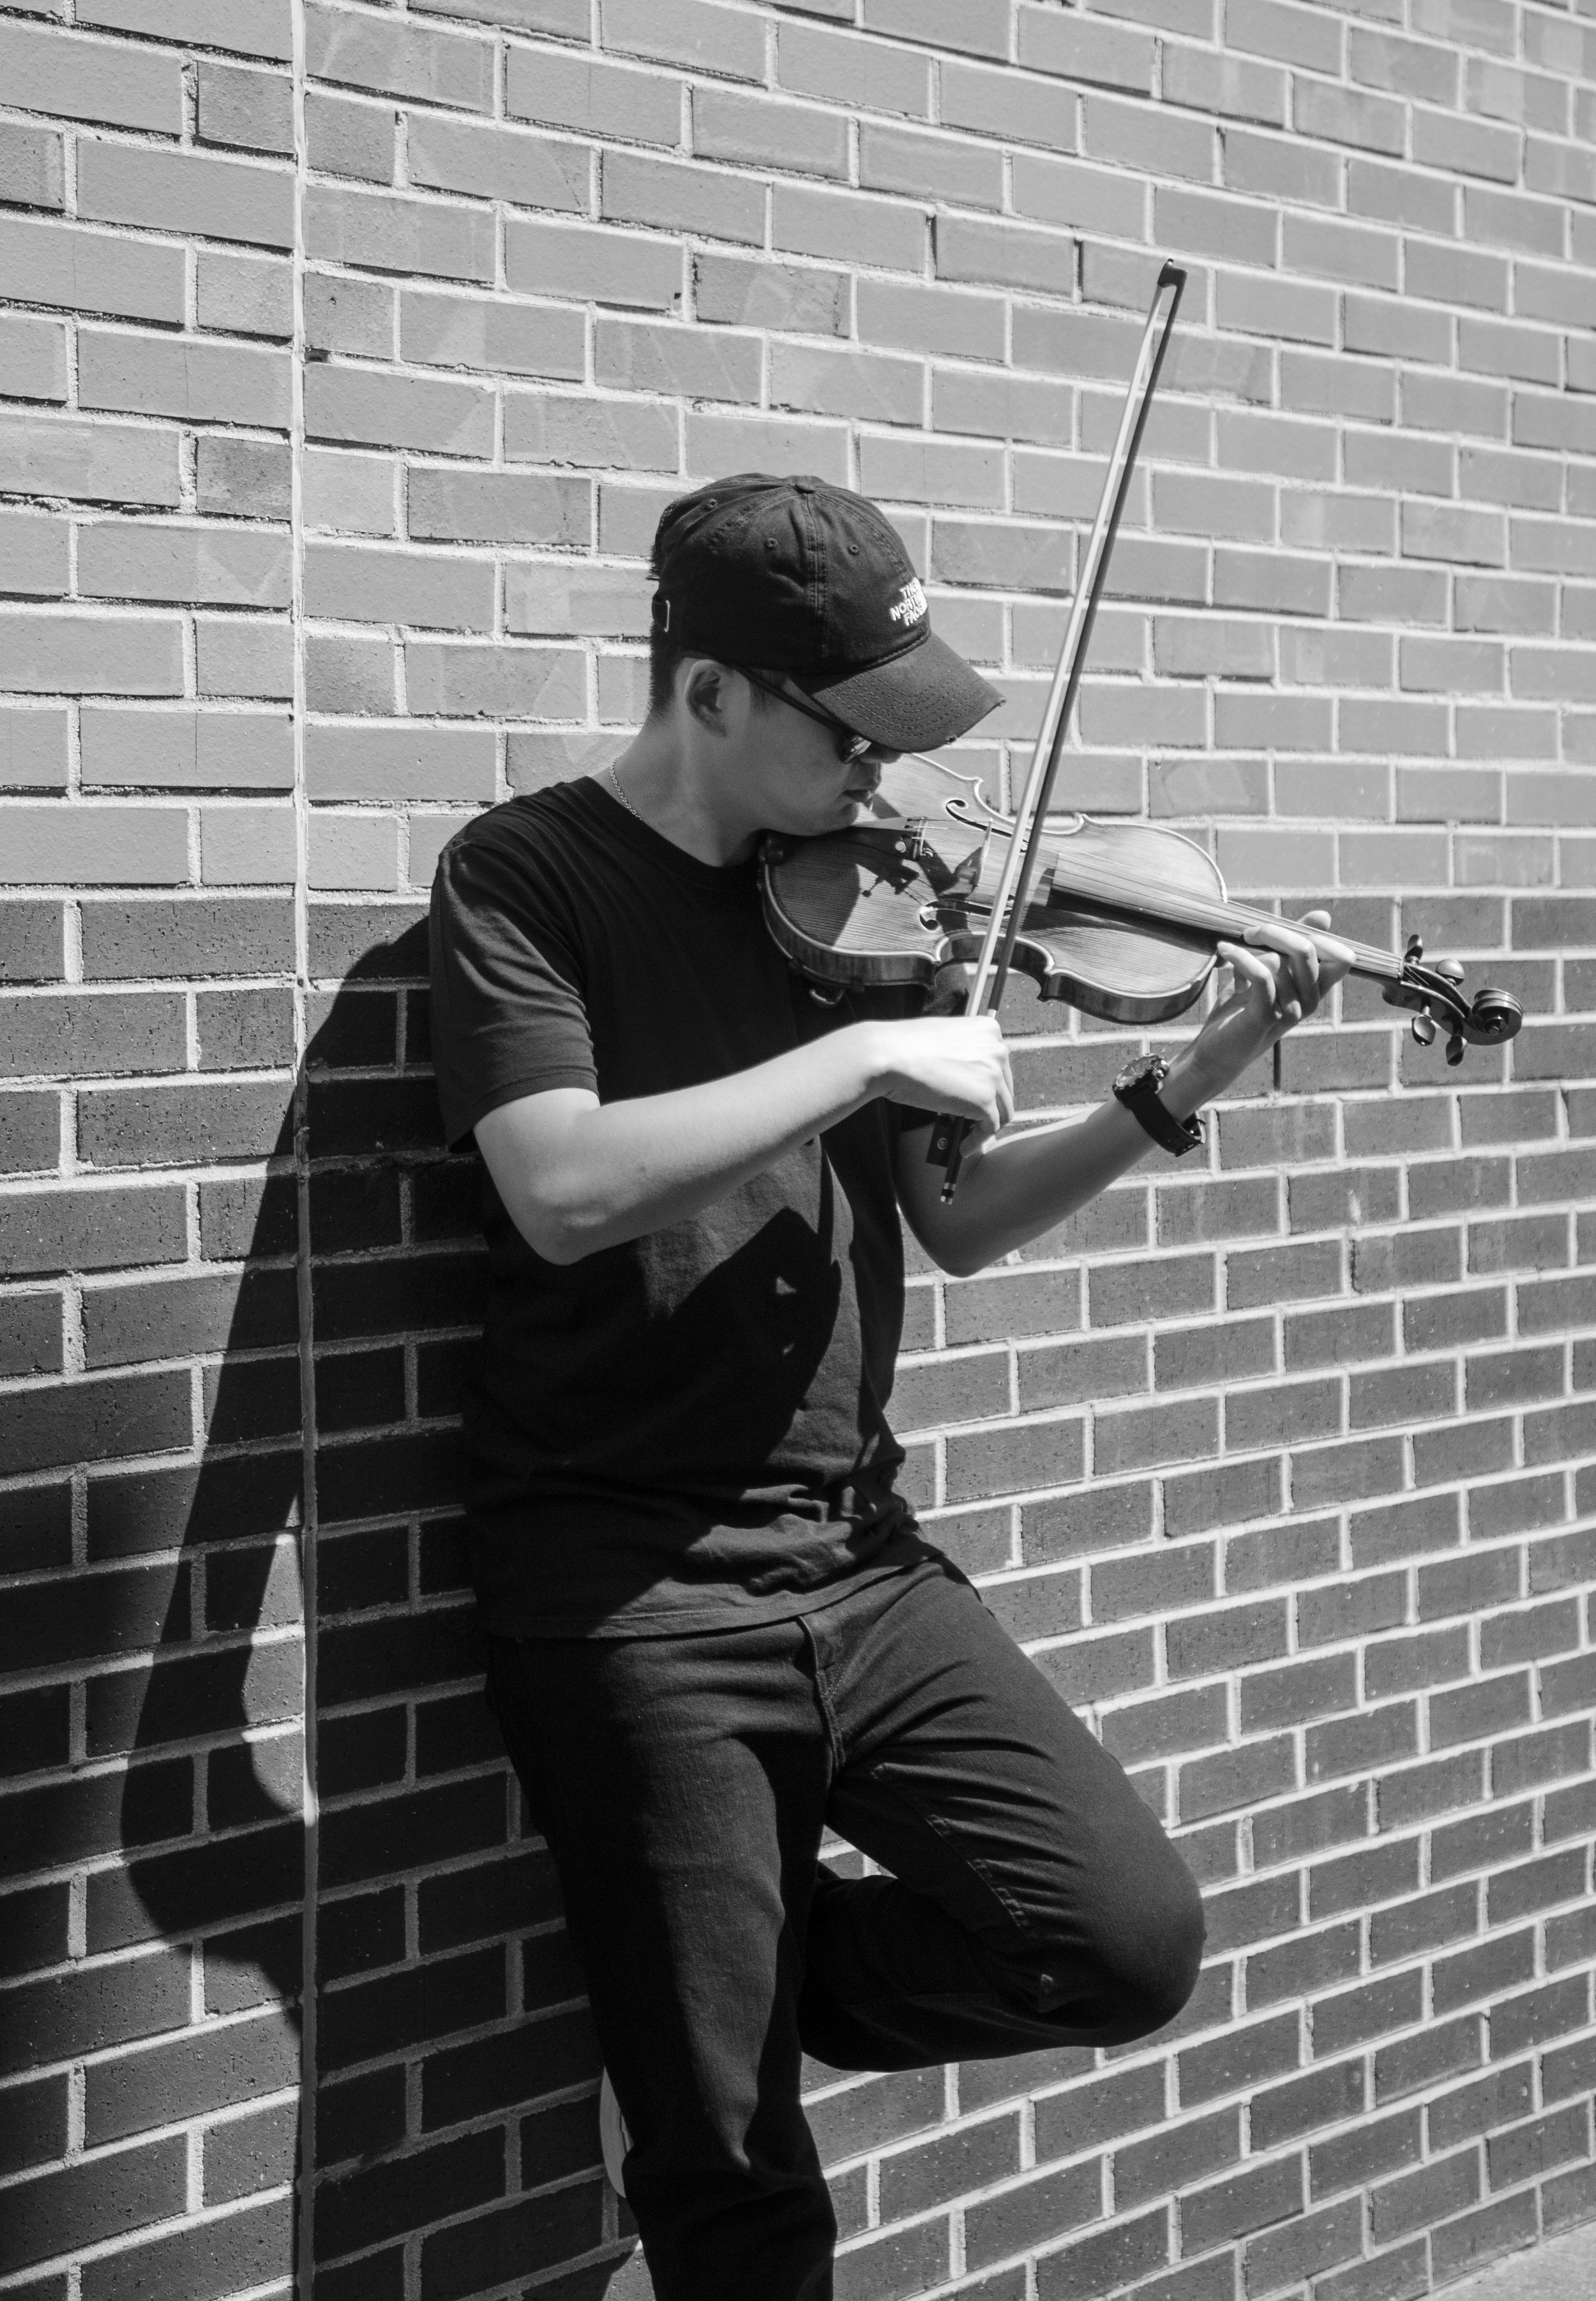 vIOLIN IN RALEIGH